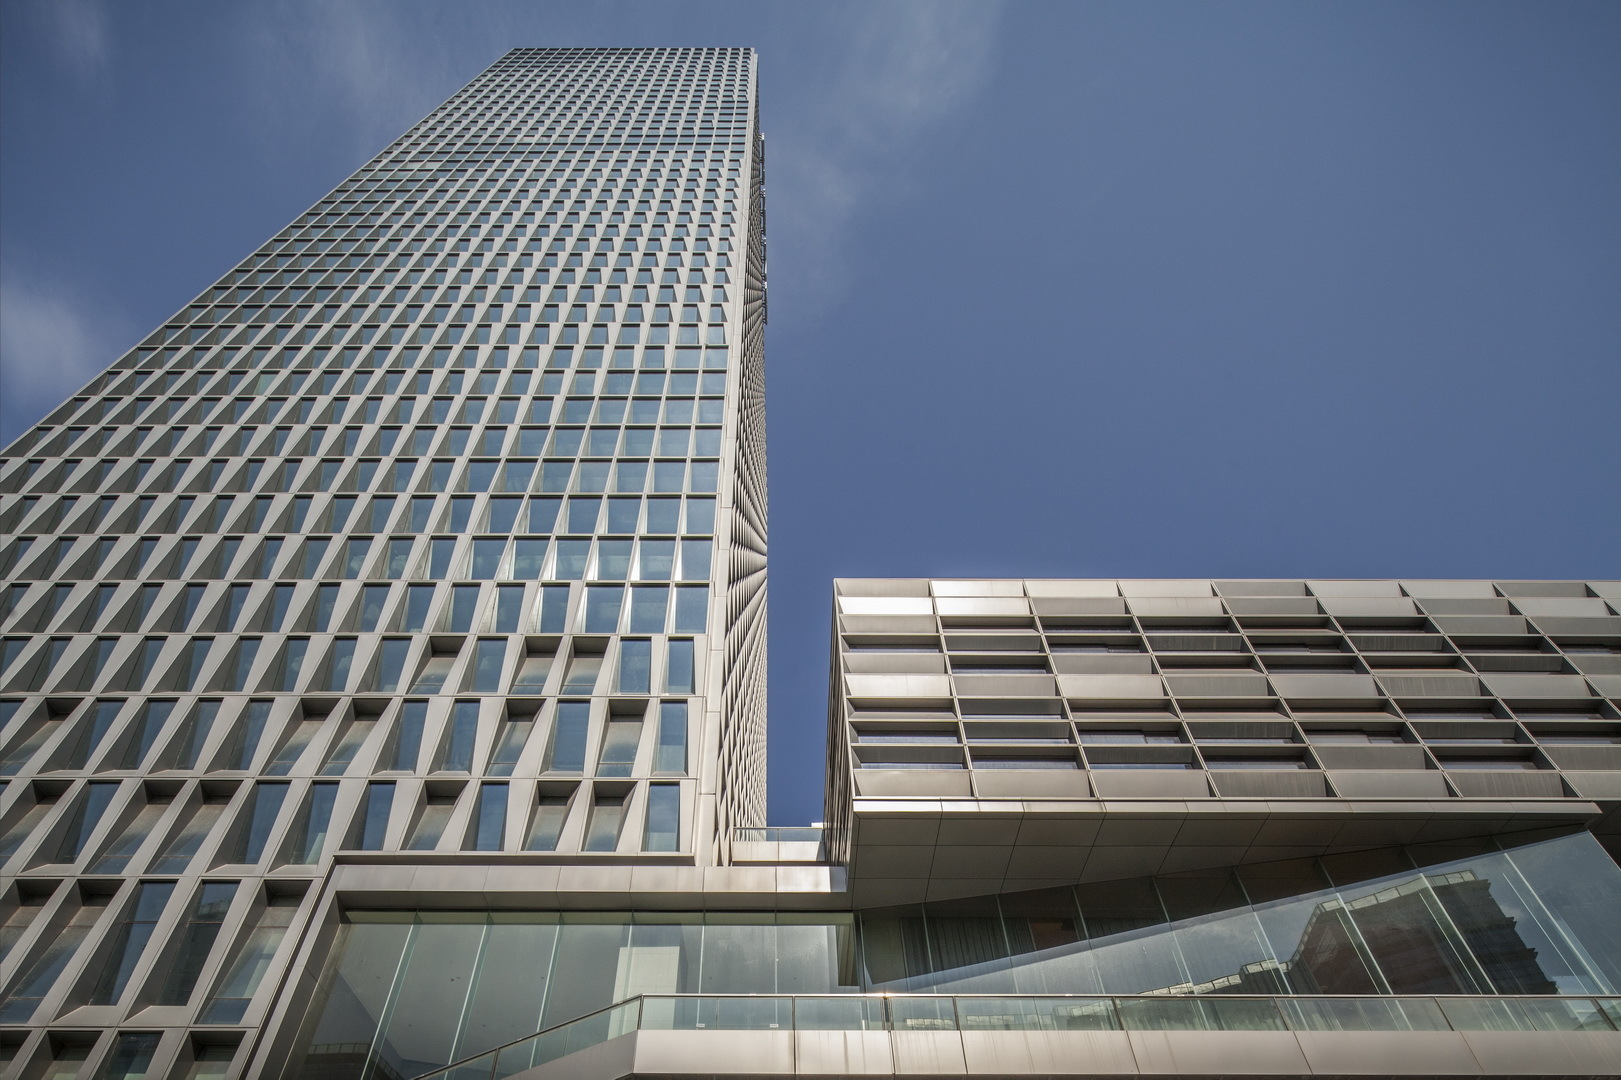 Skyscrapers in China | ArchDaily